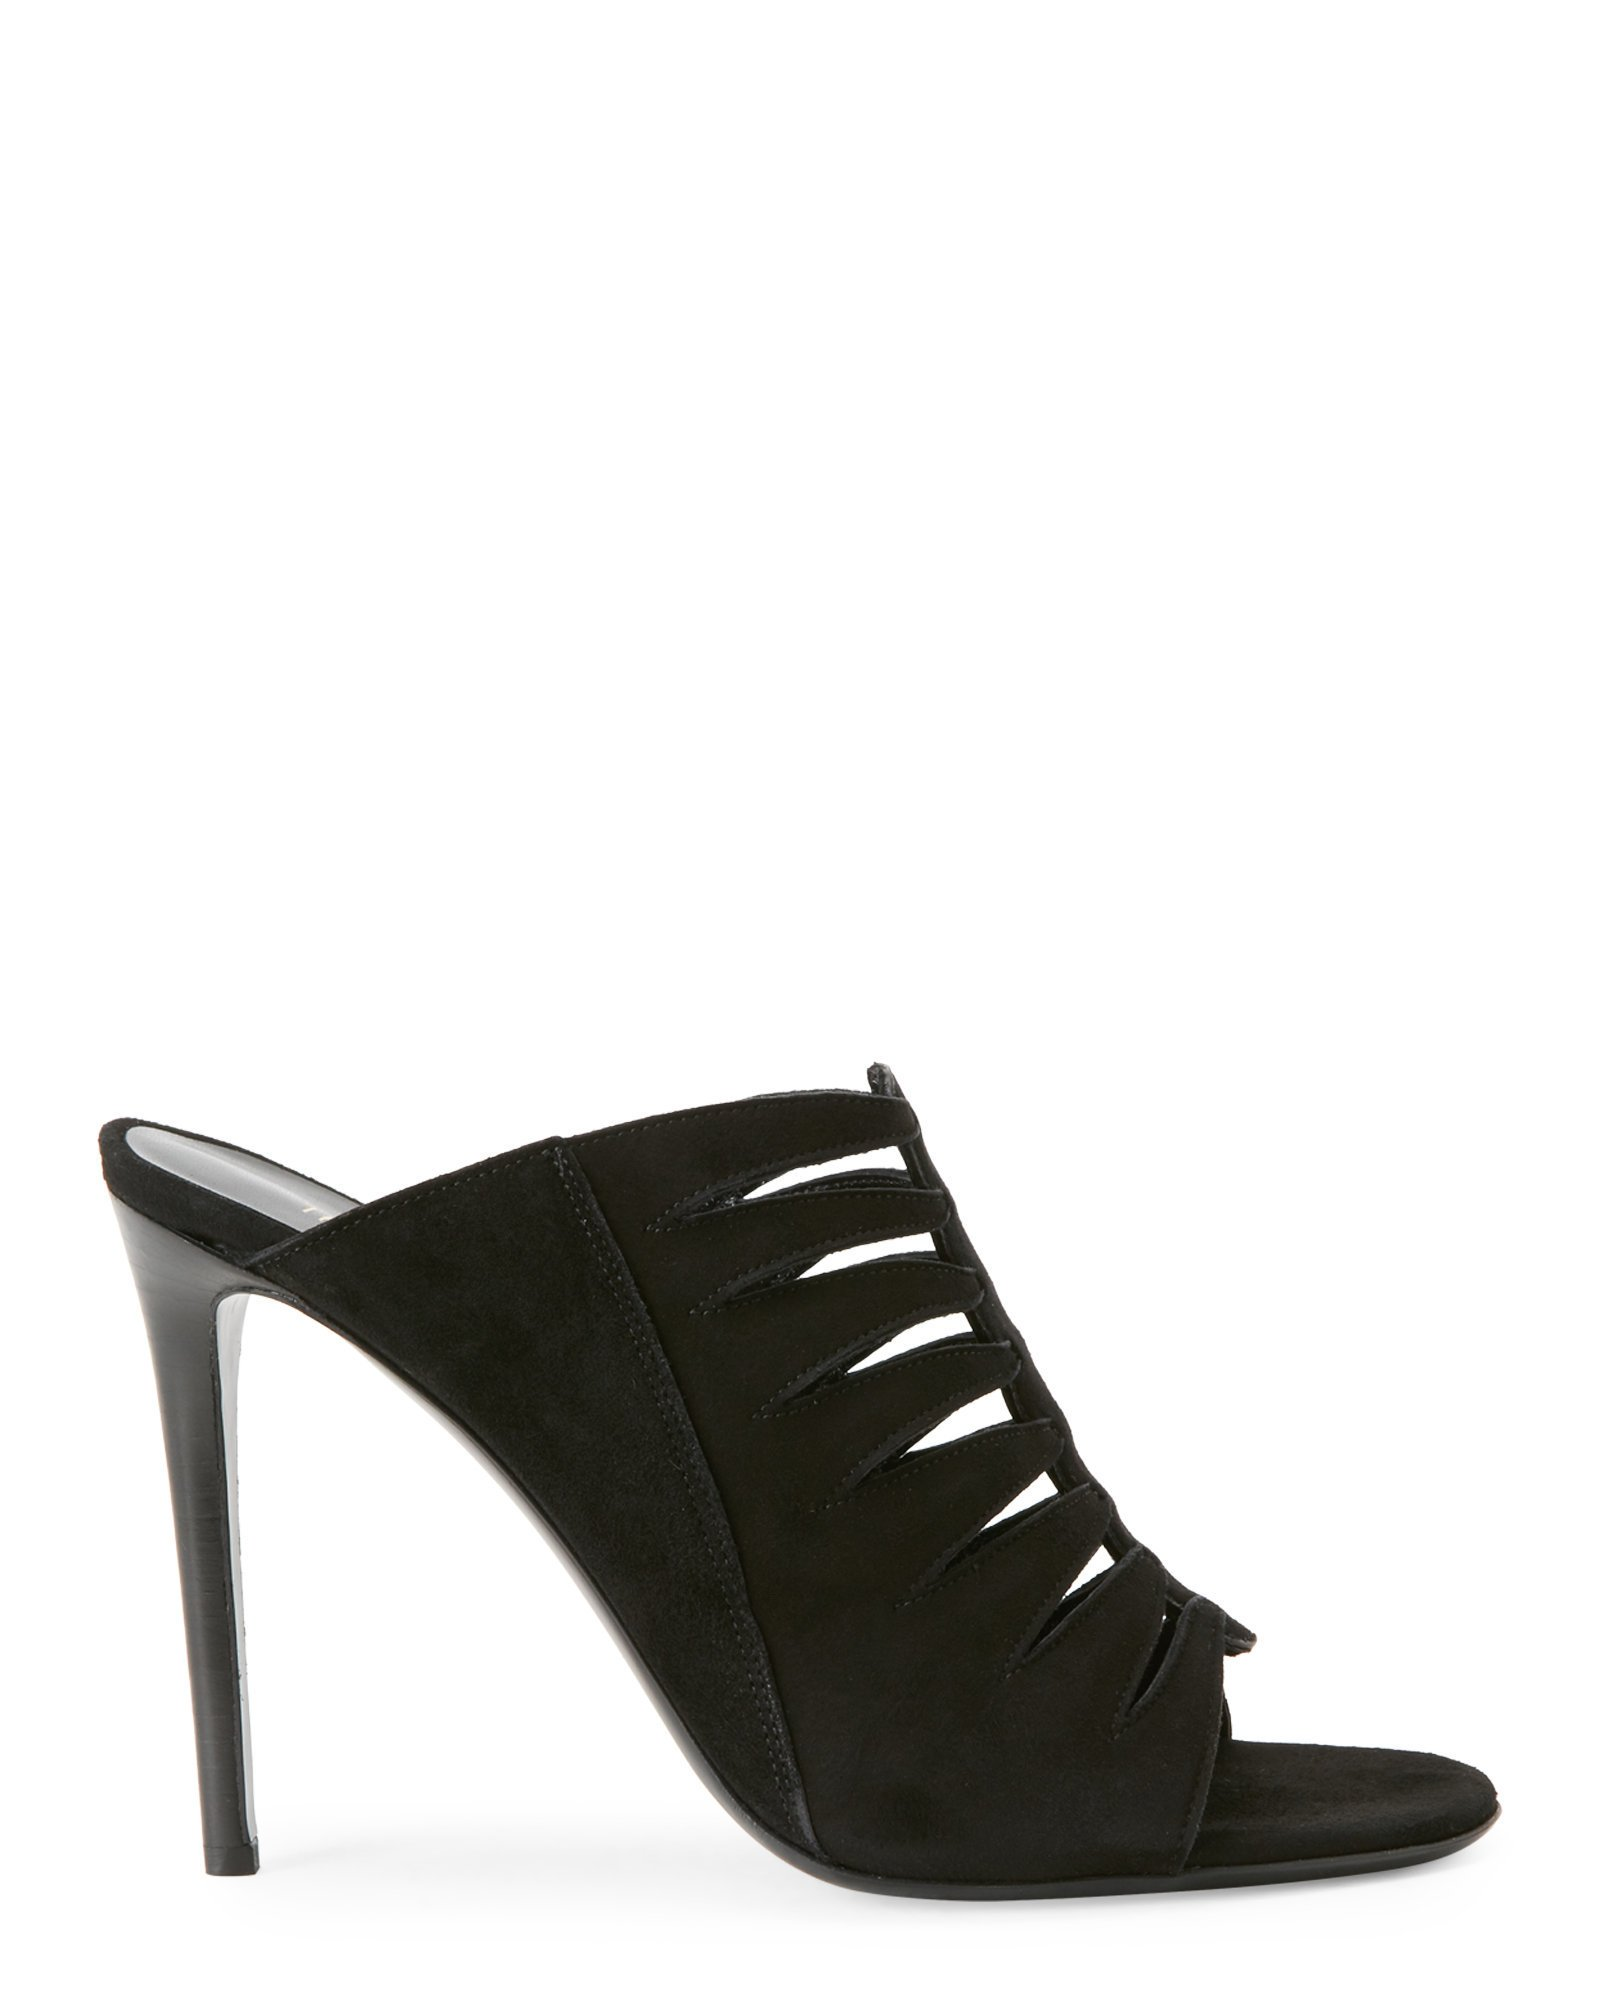 Tamara Mellon Chief Designer Jimmy Choo Phoenix Mules 11 Black